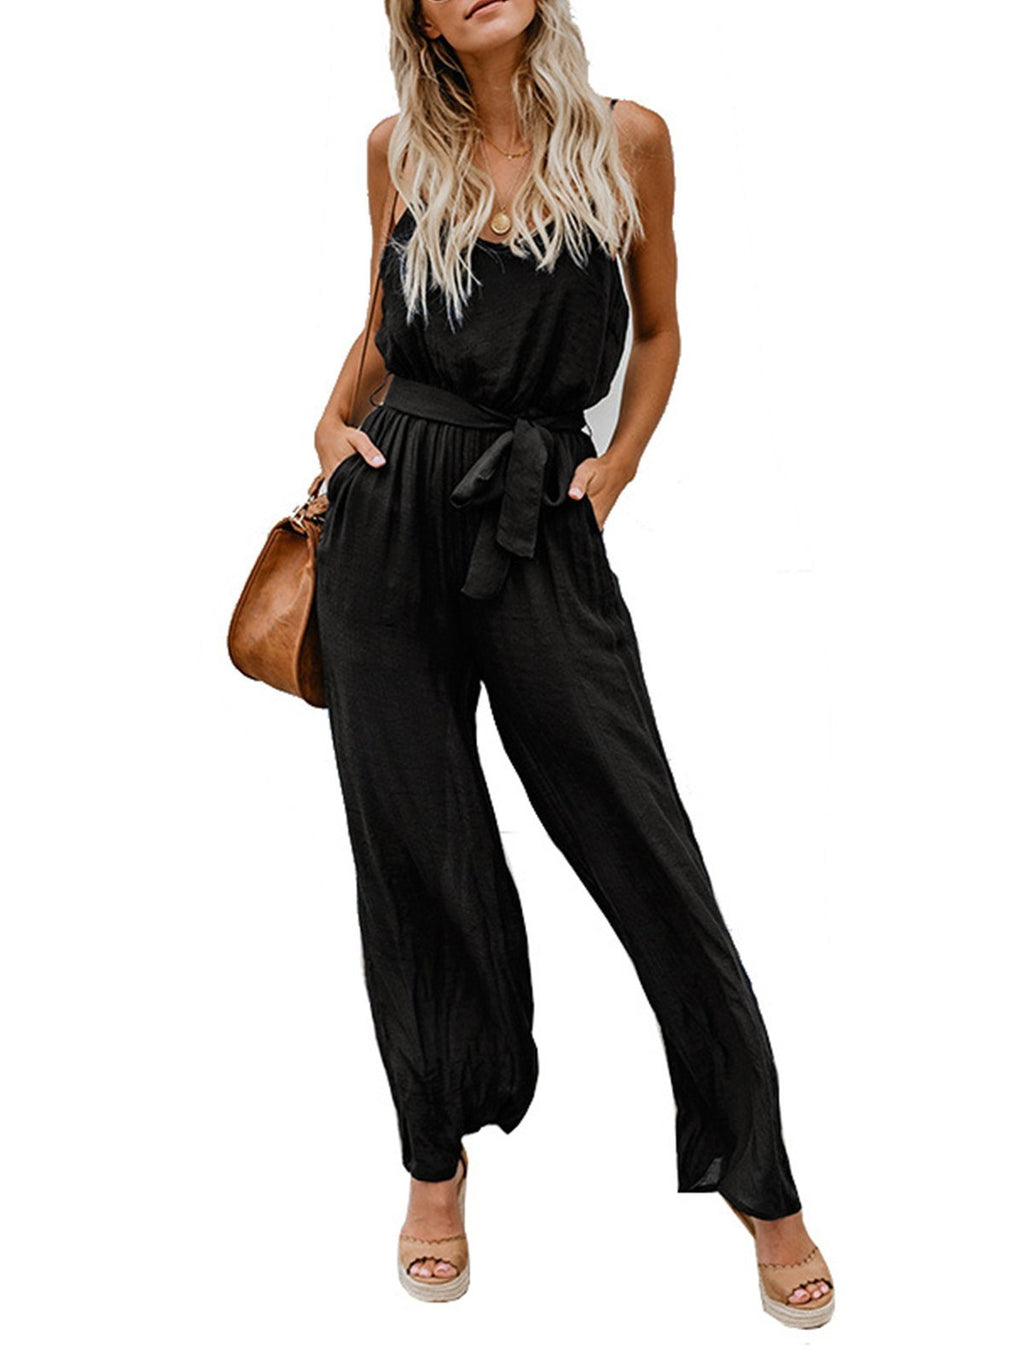 Solid V Neck Spaghetti Strap Belted Sexy Jumpsuit